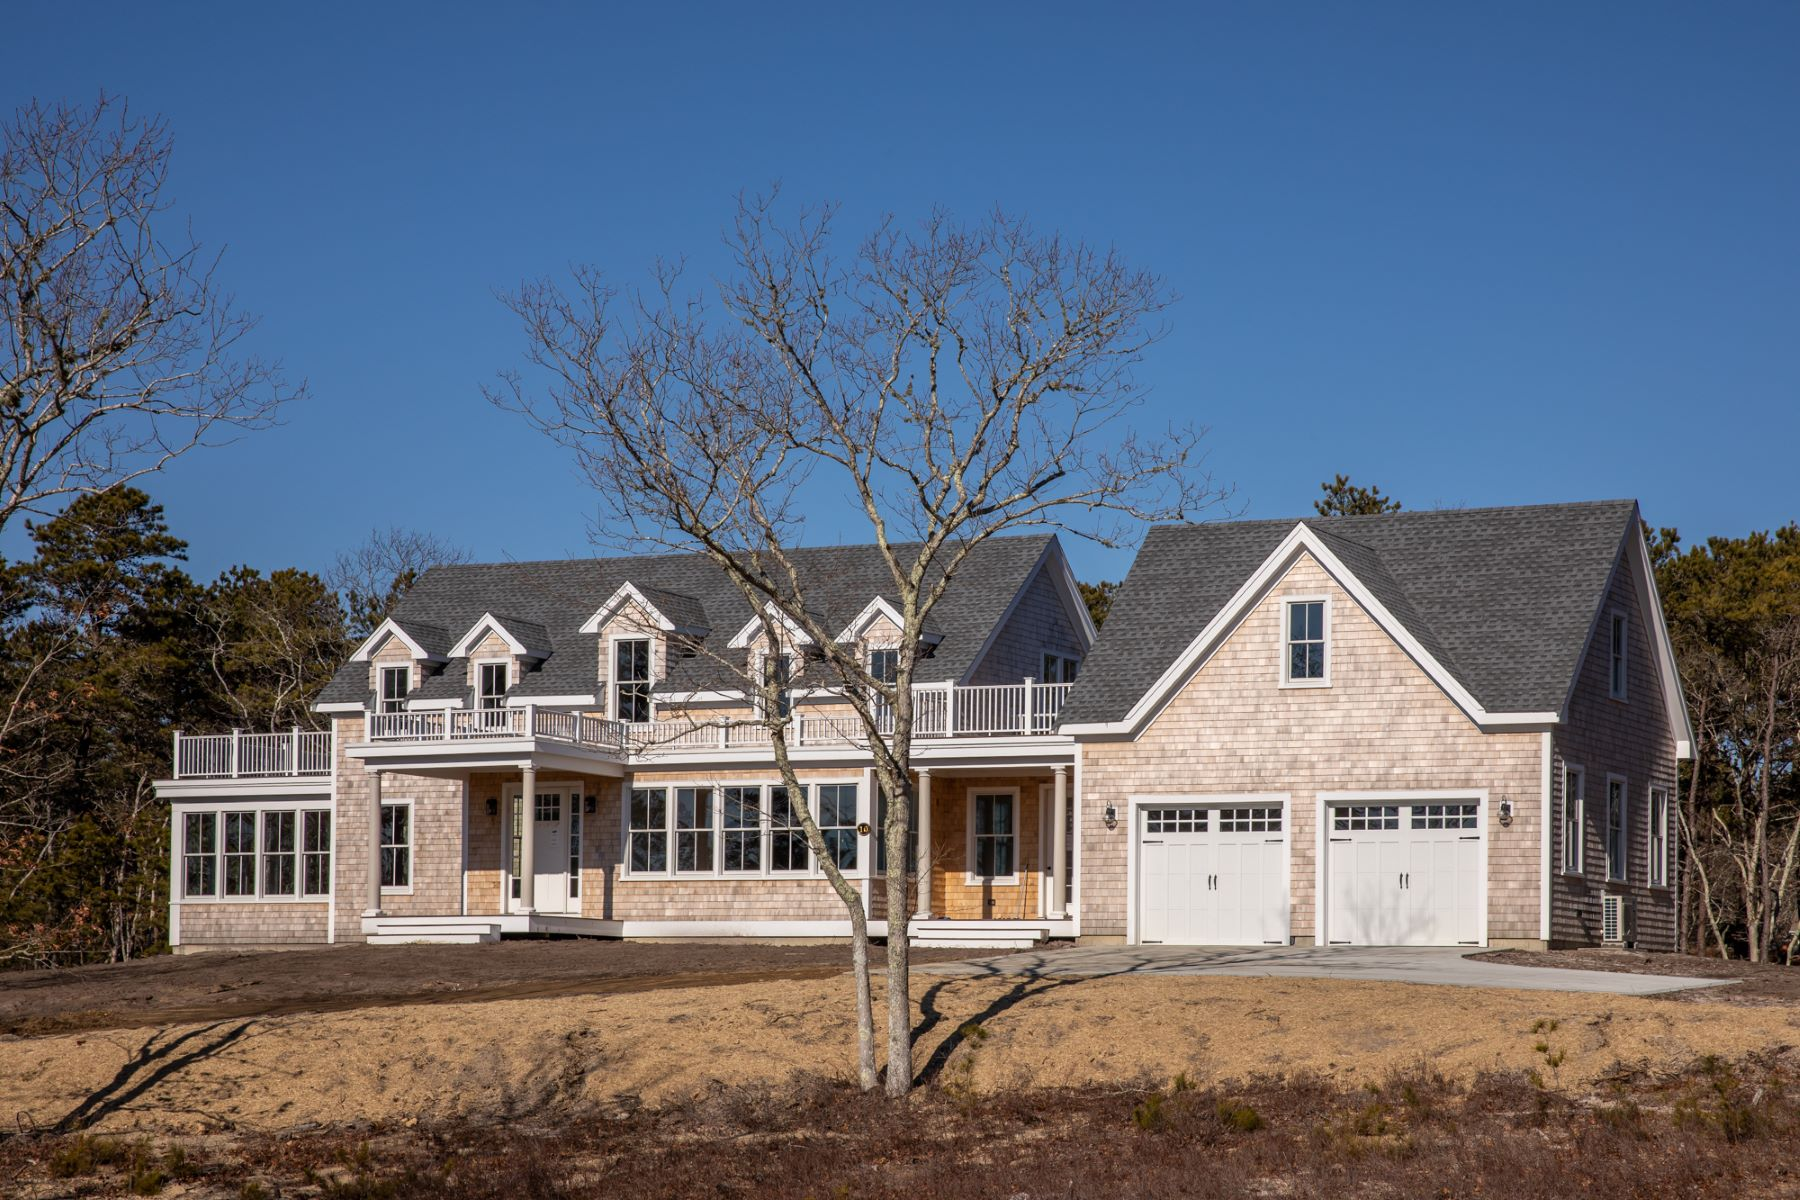 Single Family Home for Active at Brand new contsruction in Oak Bluffs 10 Paddock Road Oak Bluffs, Massachusetts 02557 United States